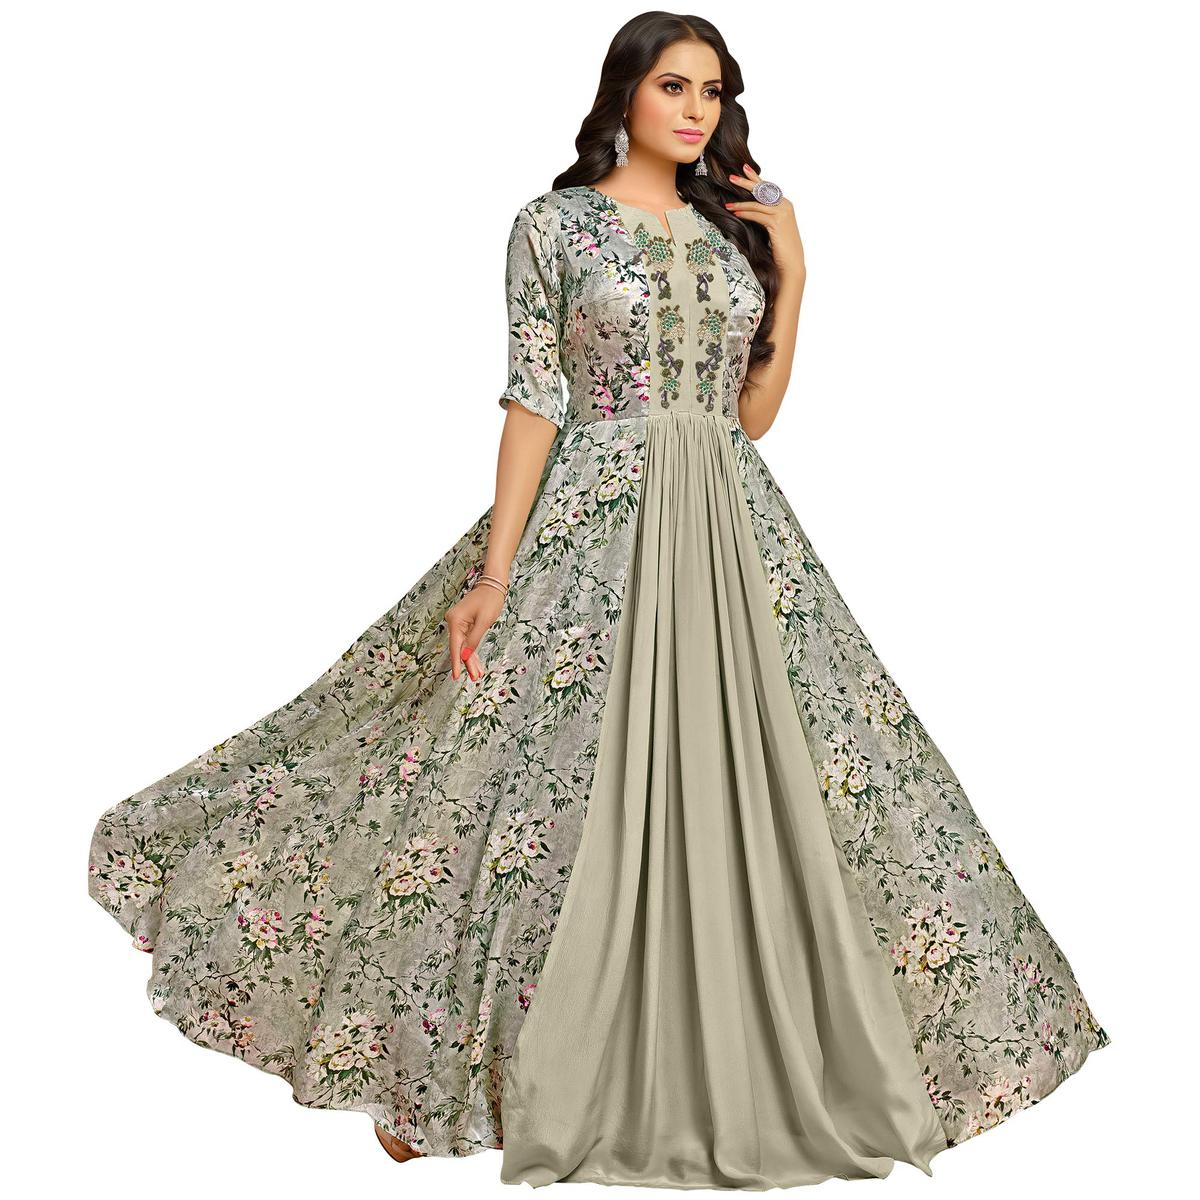 Silk Gowns For Women: Buy Arresting Gray Colored Partywear Embroidered Pure